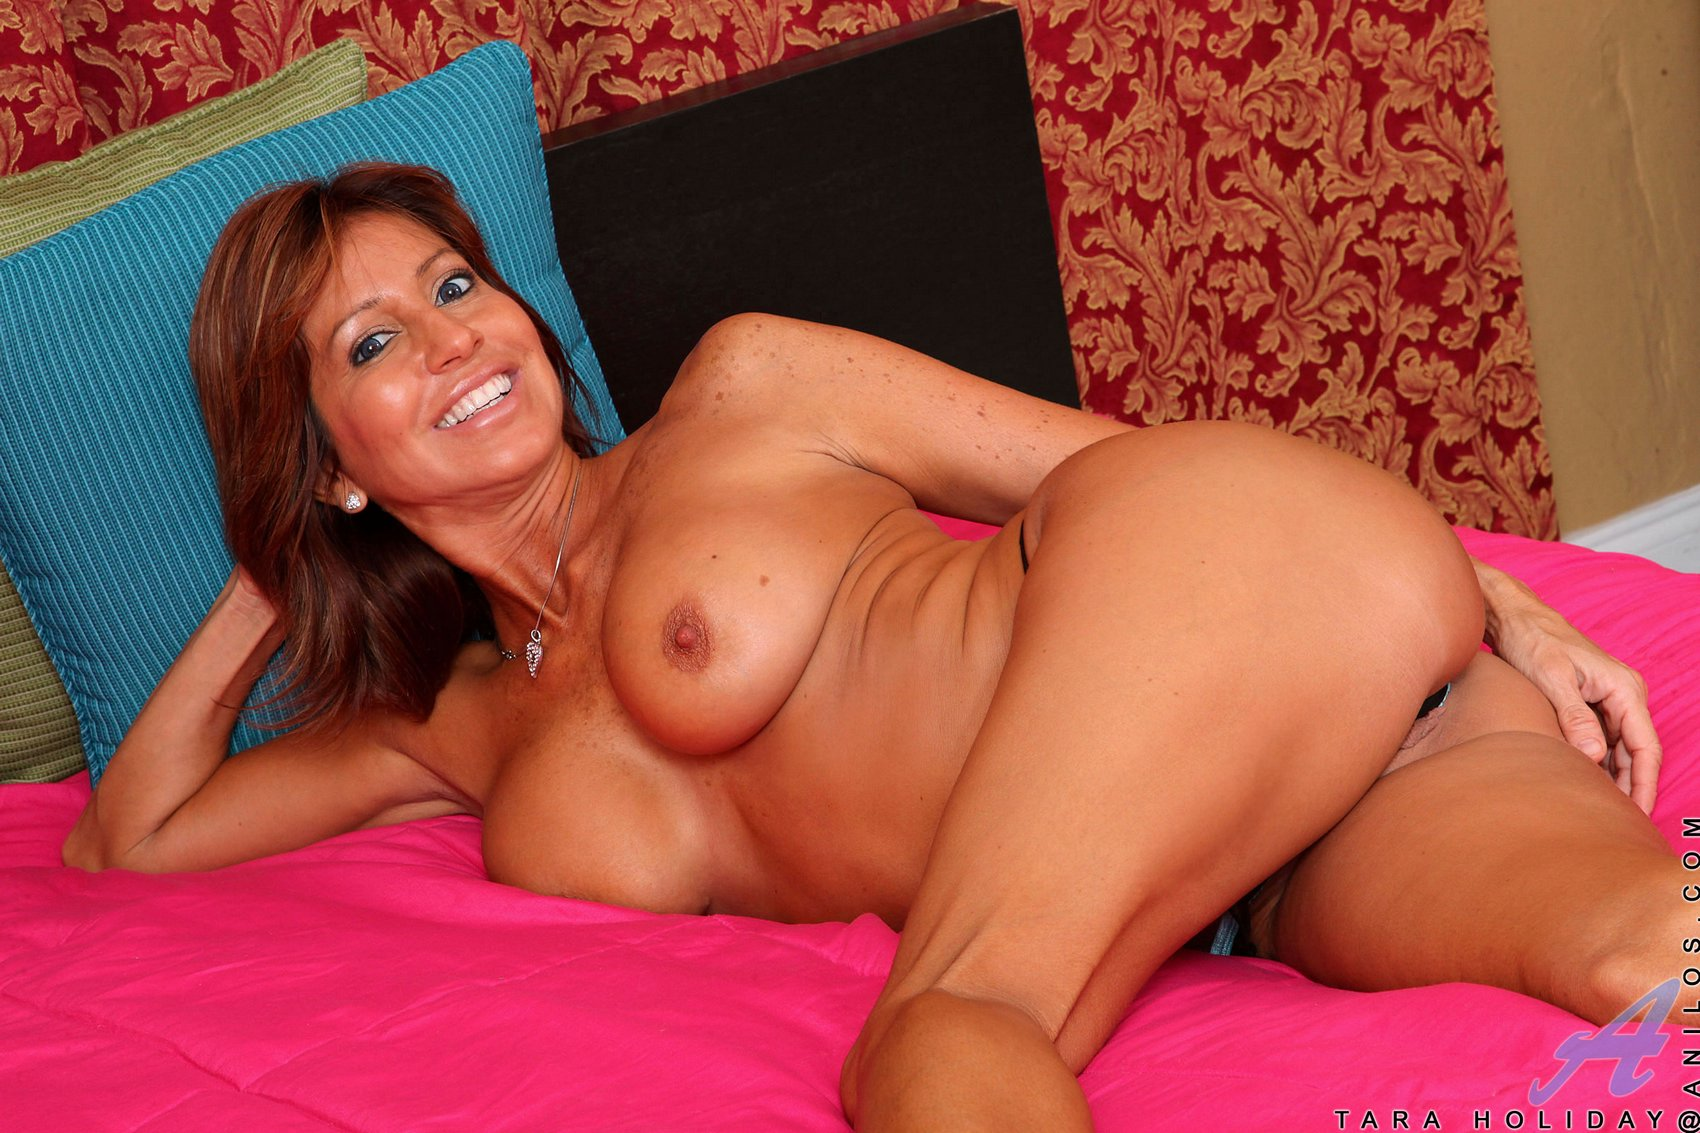 Tara Holiday stripping and posing naked on bed - My ...